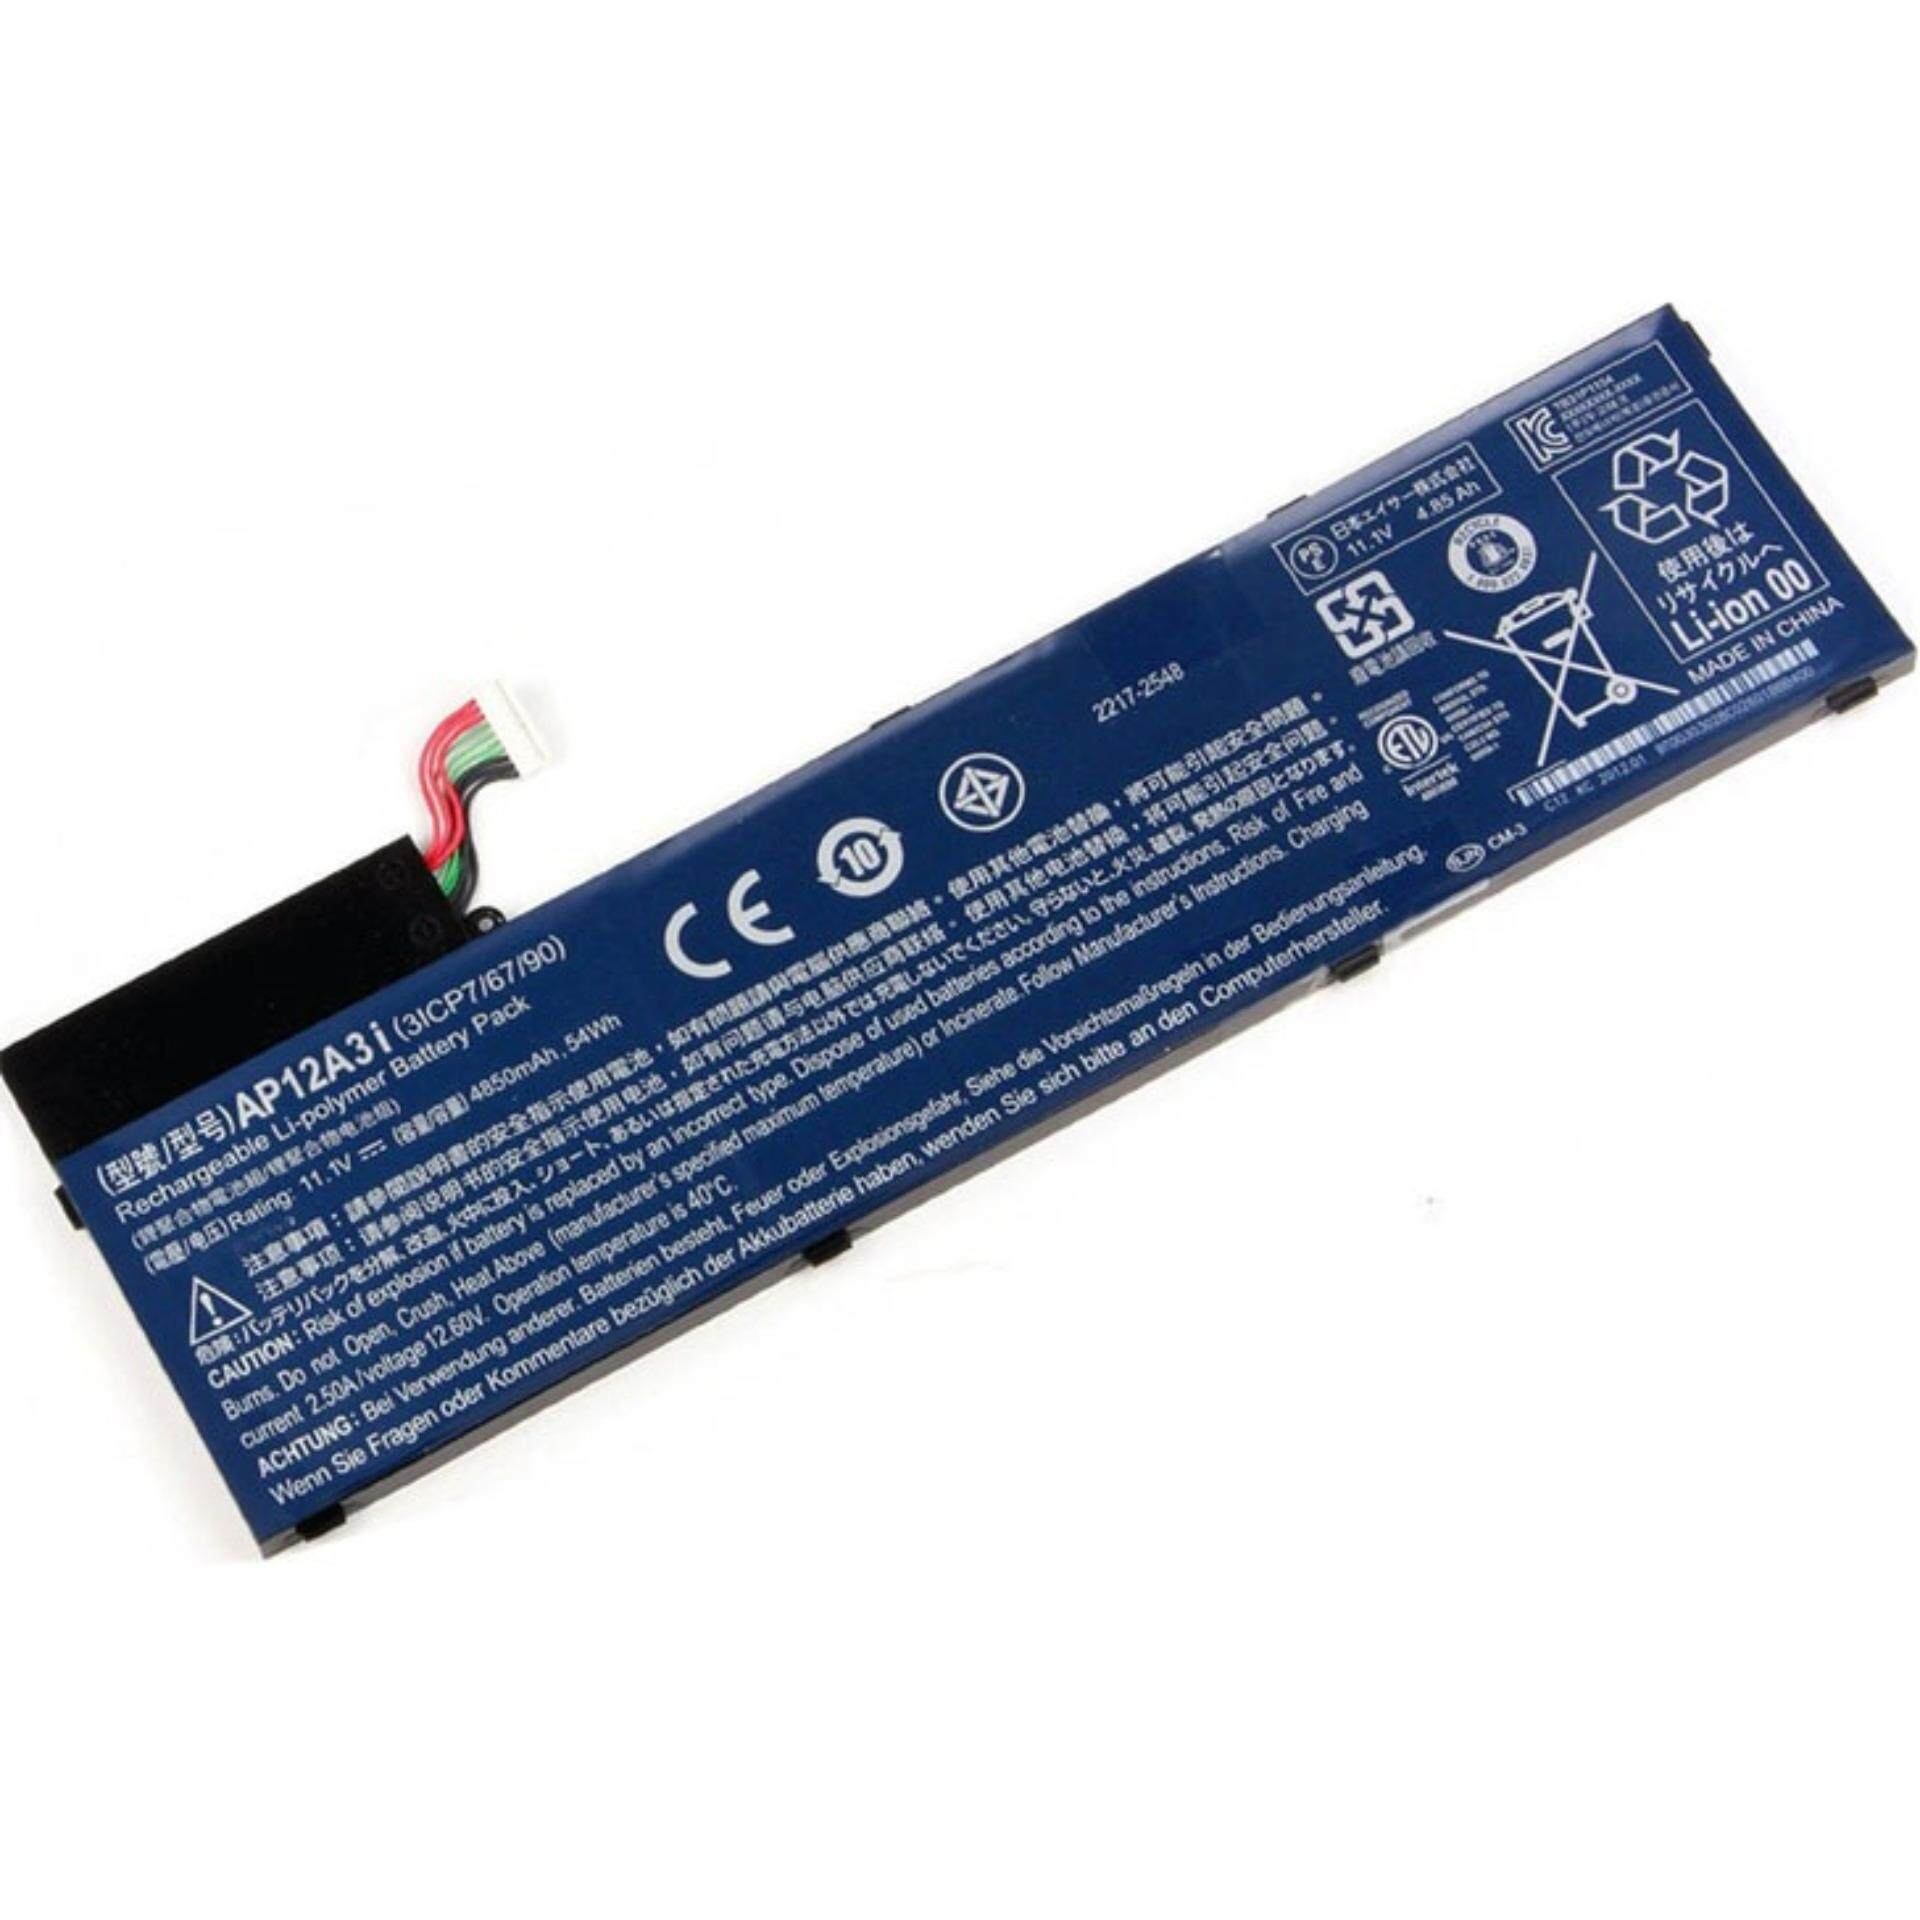 Acer Aspire M5-481TG-52466G52MASS TIMELINE ULTRA Laptop Battery